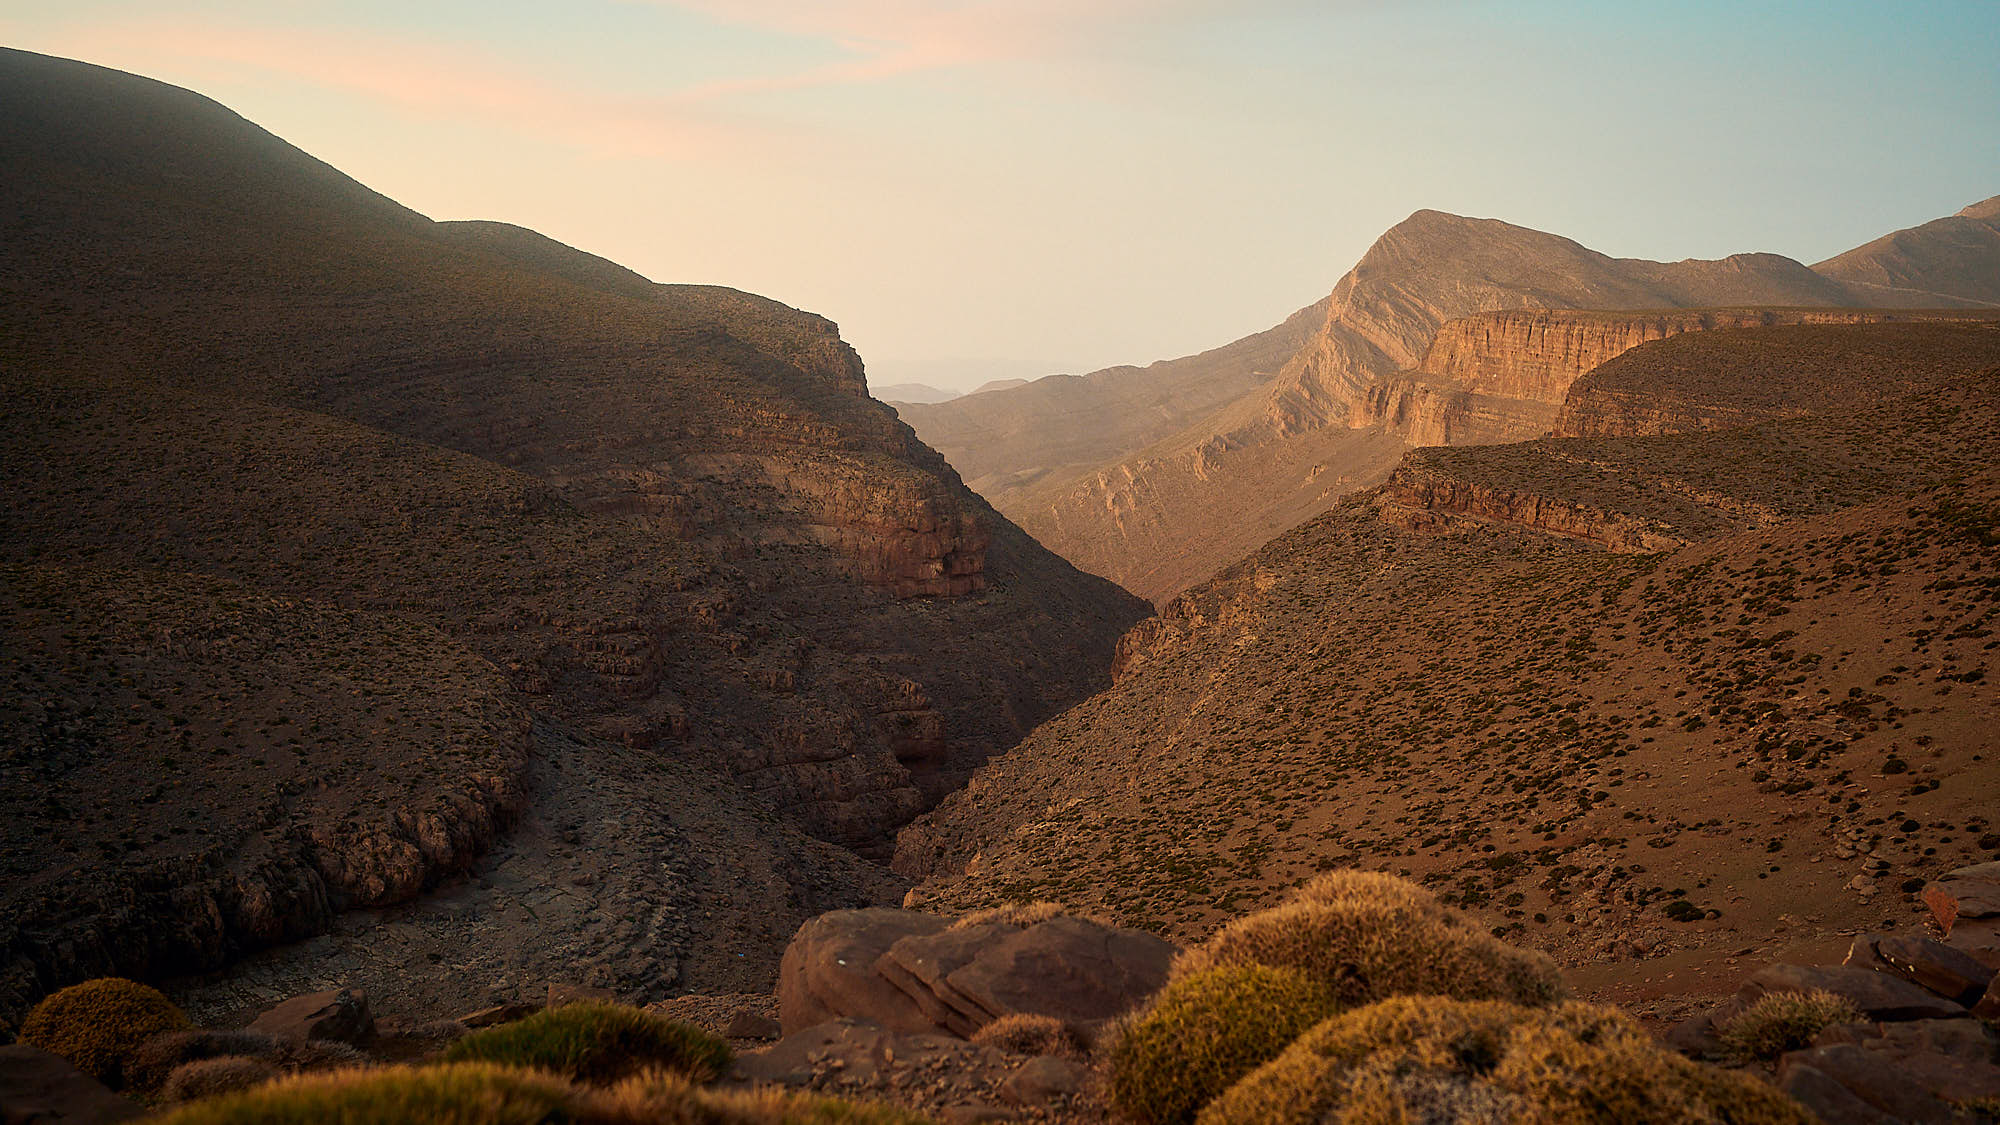 Landscape view in Morocco's High Atlas mountain ridge